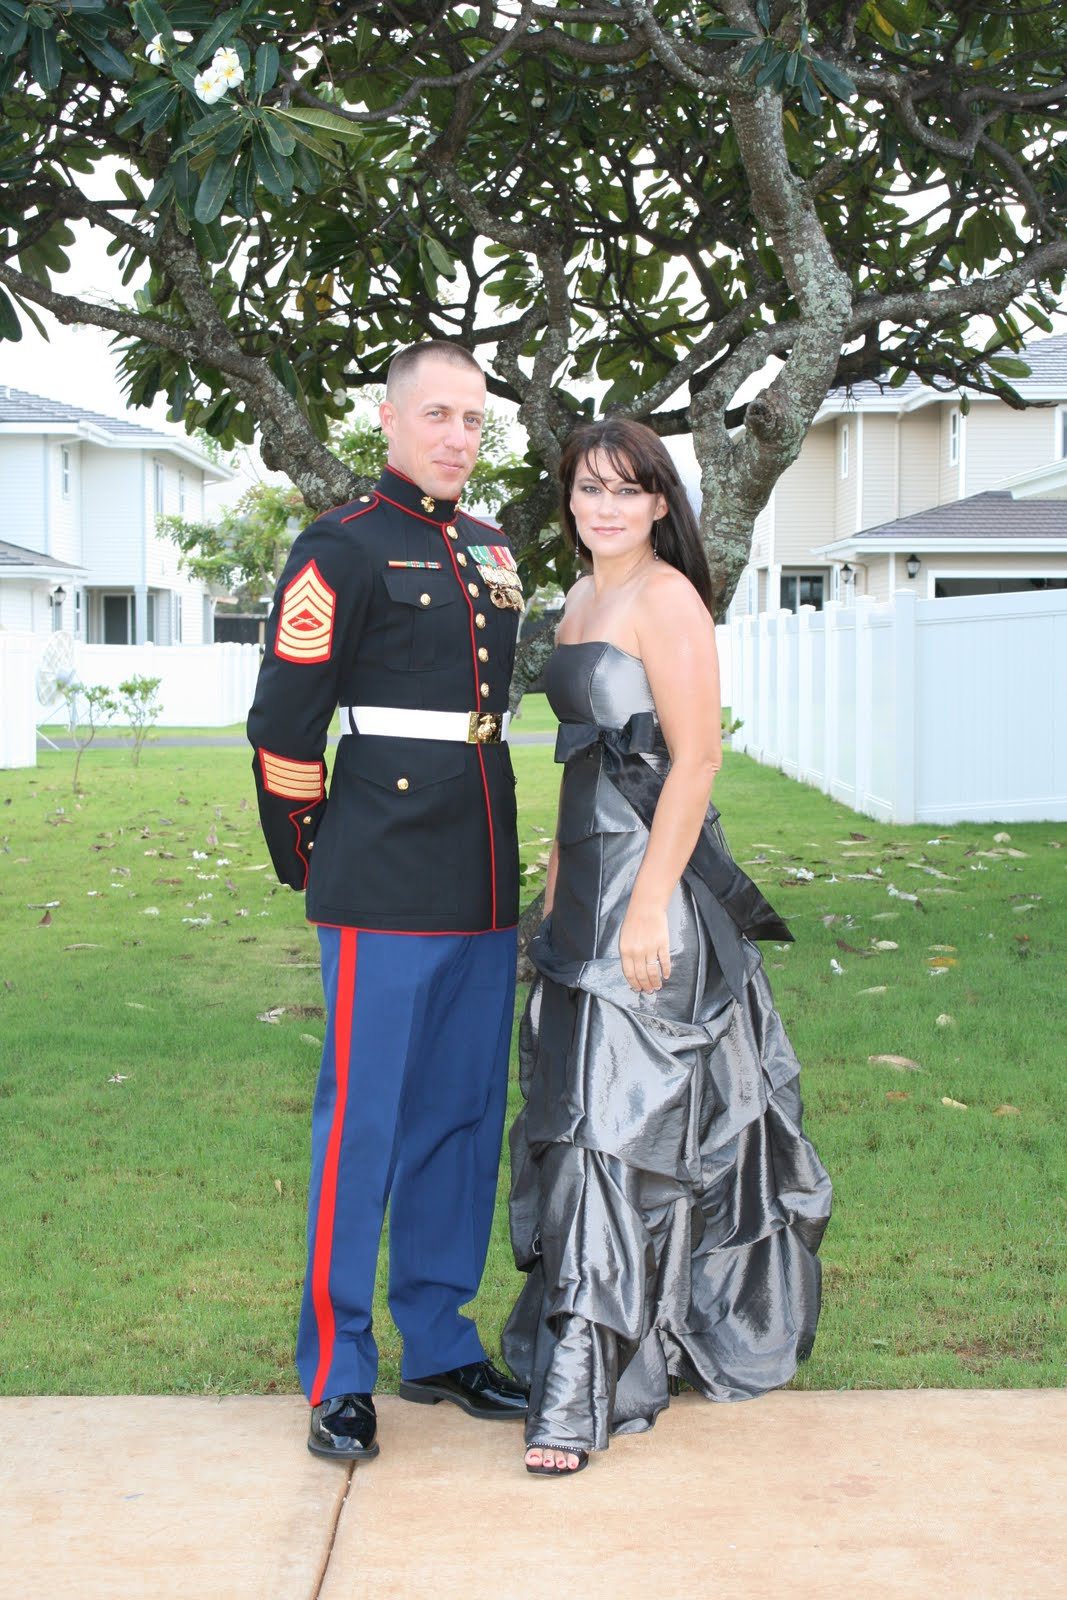 Marine Corps Ball dress help! [pics added] - General Support and